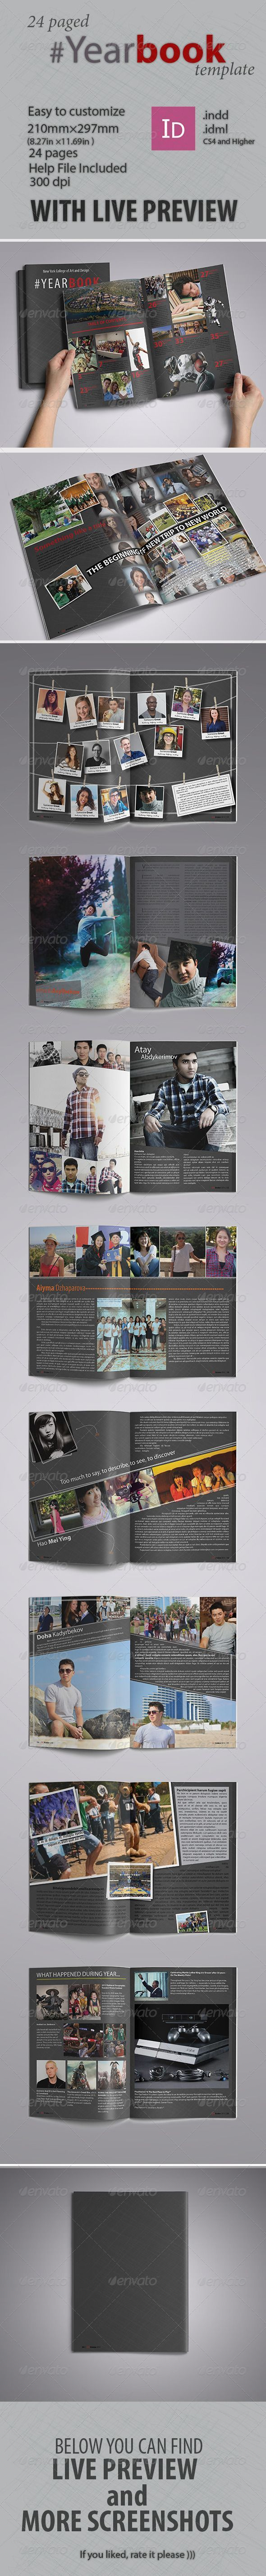 best 25 yearbook template ideas only on pinterest creative